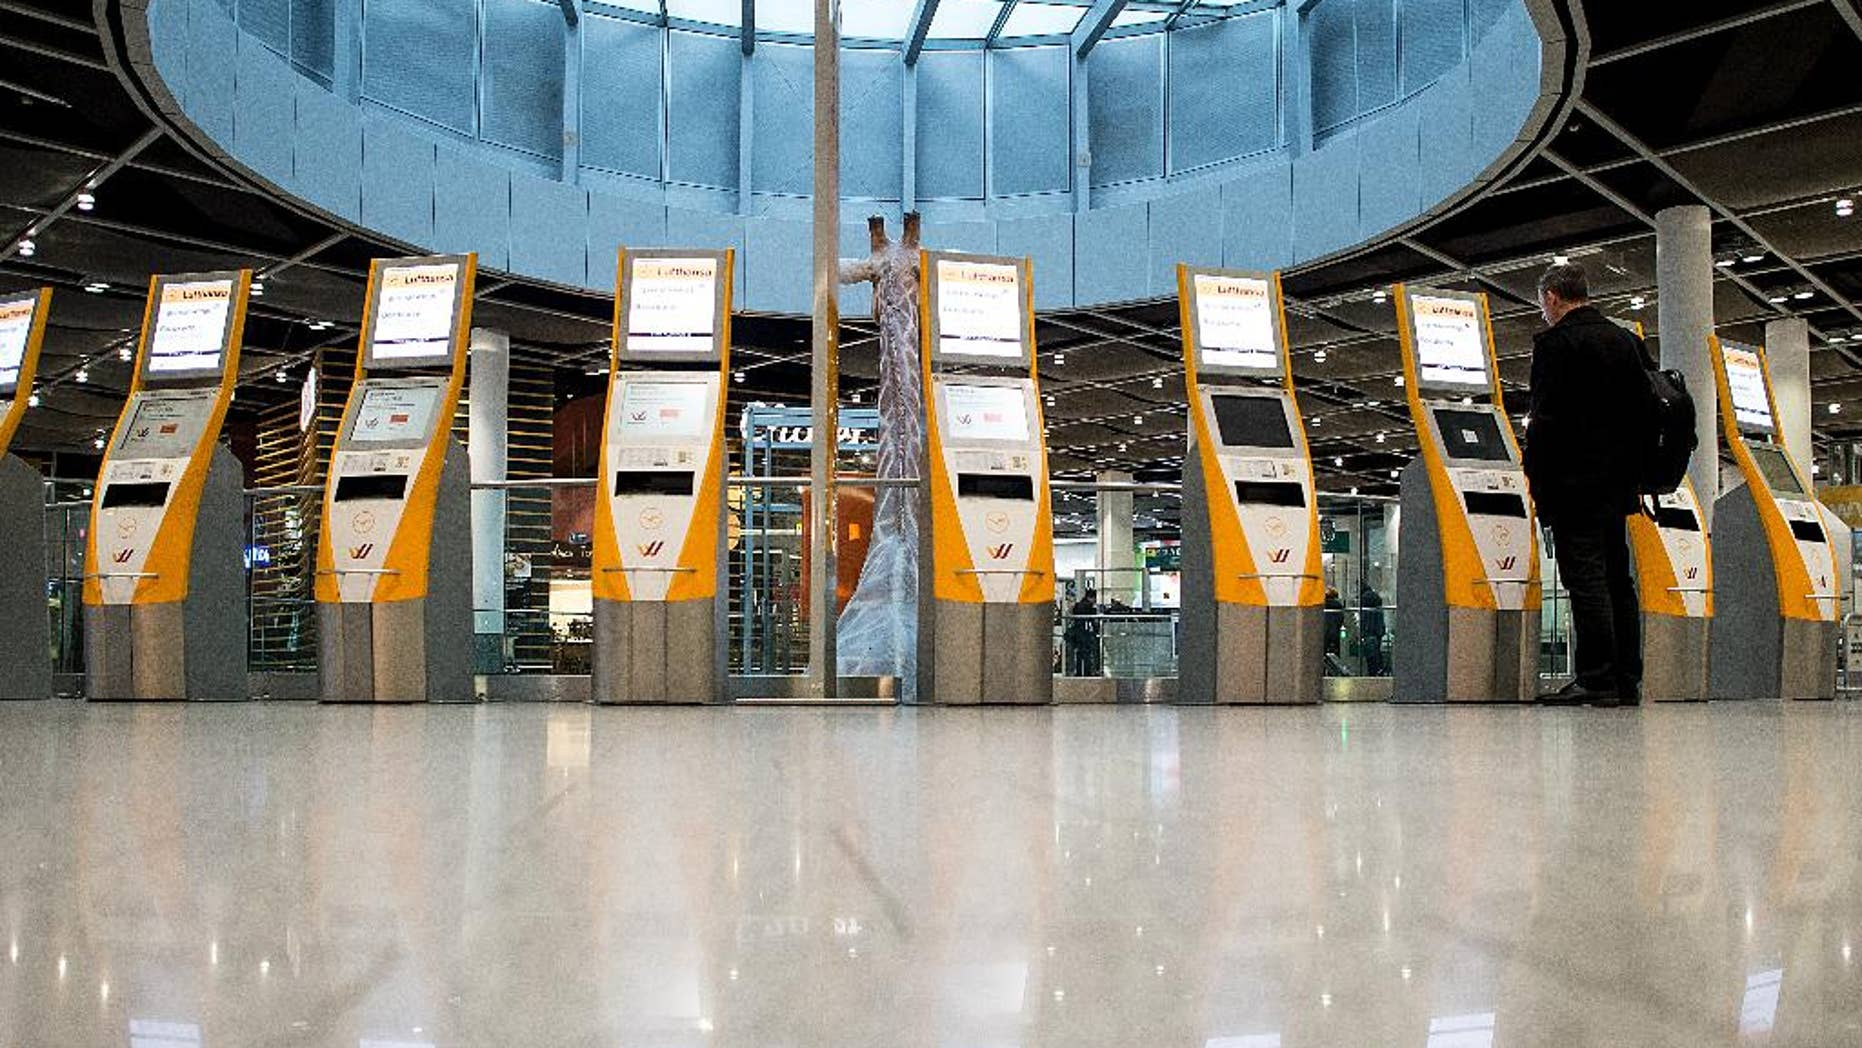 Unused check-in terminals are reflected on the floor in the airport in Duesseldorf, western Germany, Friday morning, March 20, 2015. Lufthansa pilots continue their  strike in a dispute centering on the airline's plans to cut transition payments for pilots wanting to retire early, which the union wants to see maintained continues. (AP Photo/dpa,  Maja Hitij)